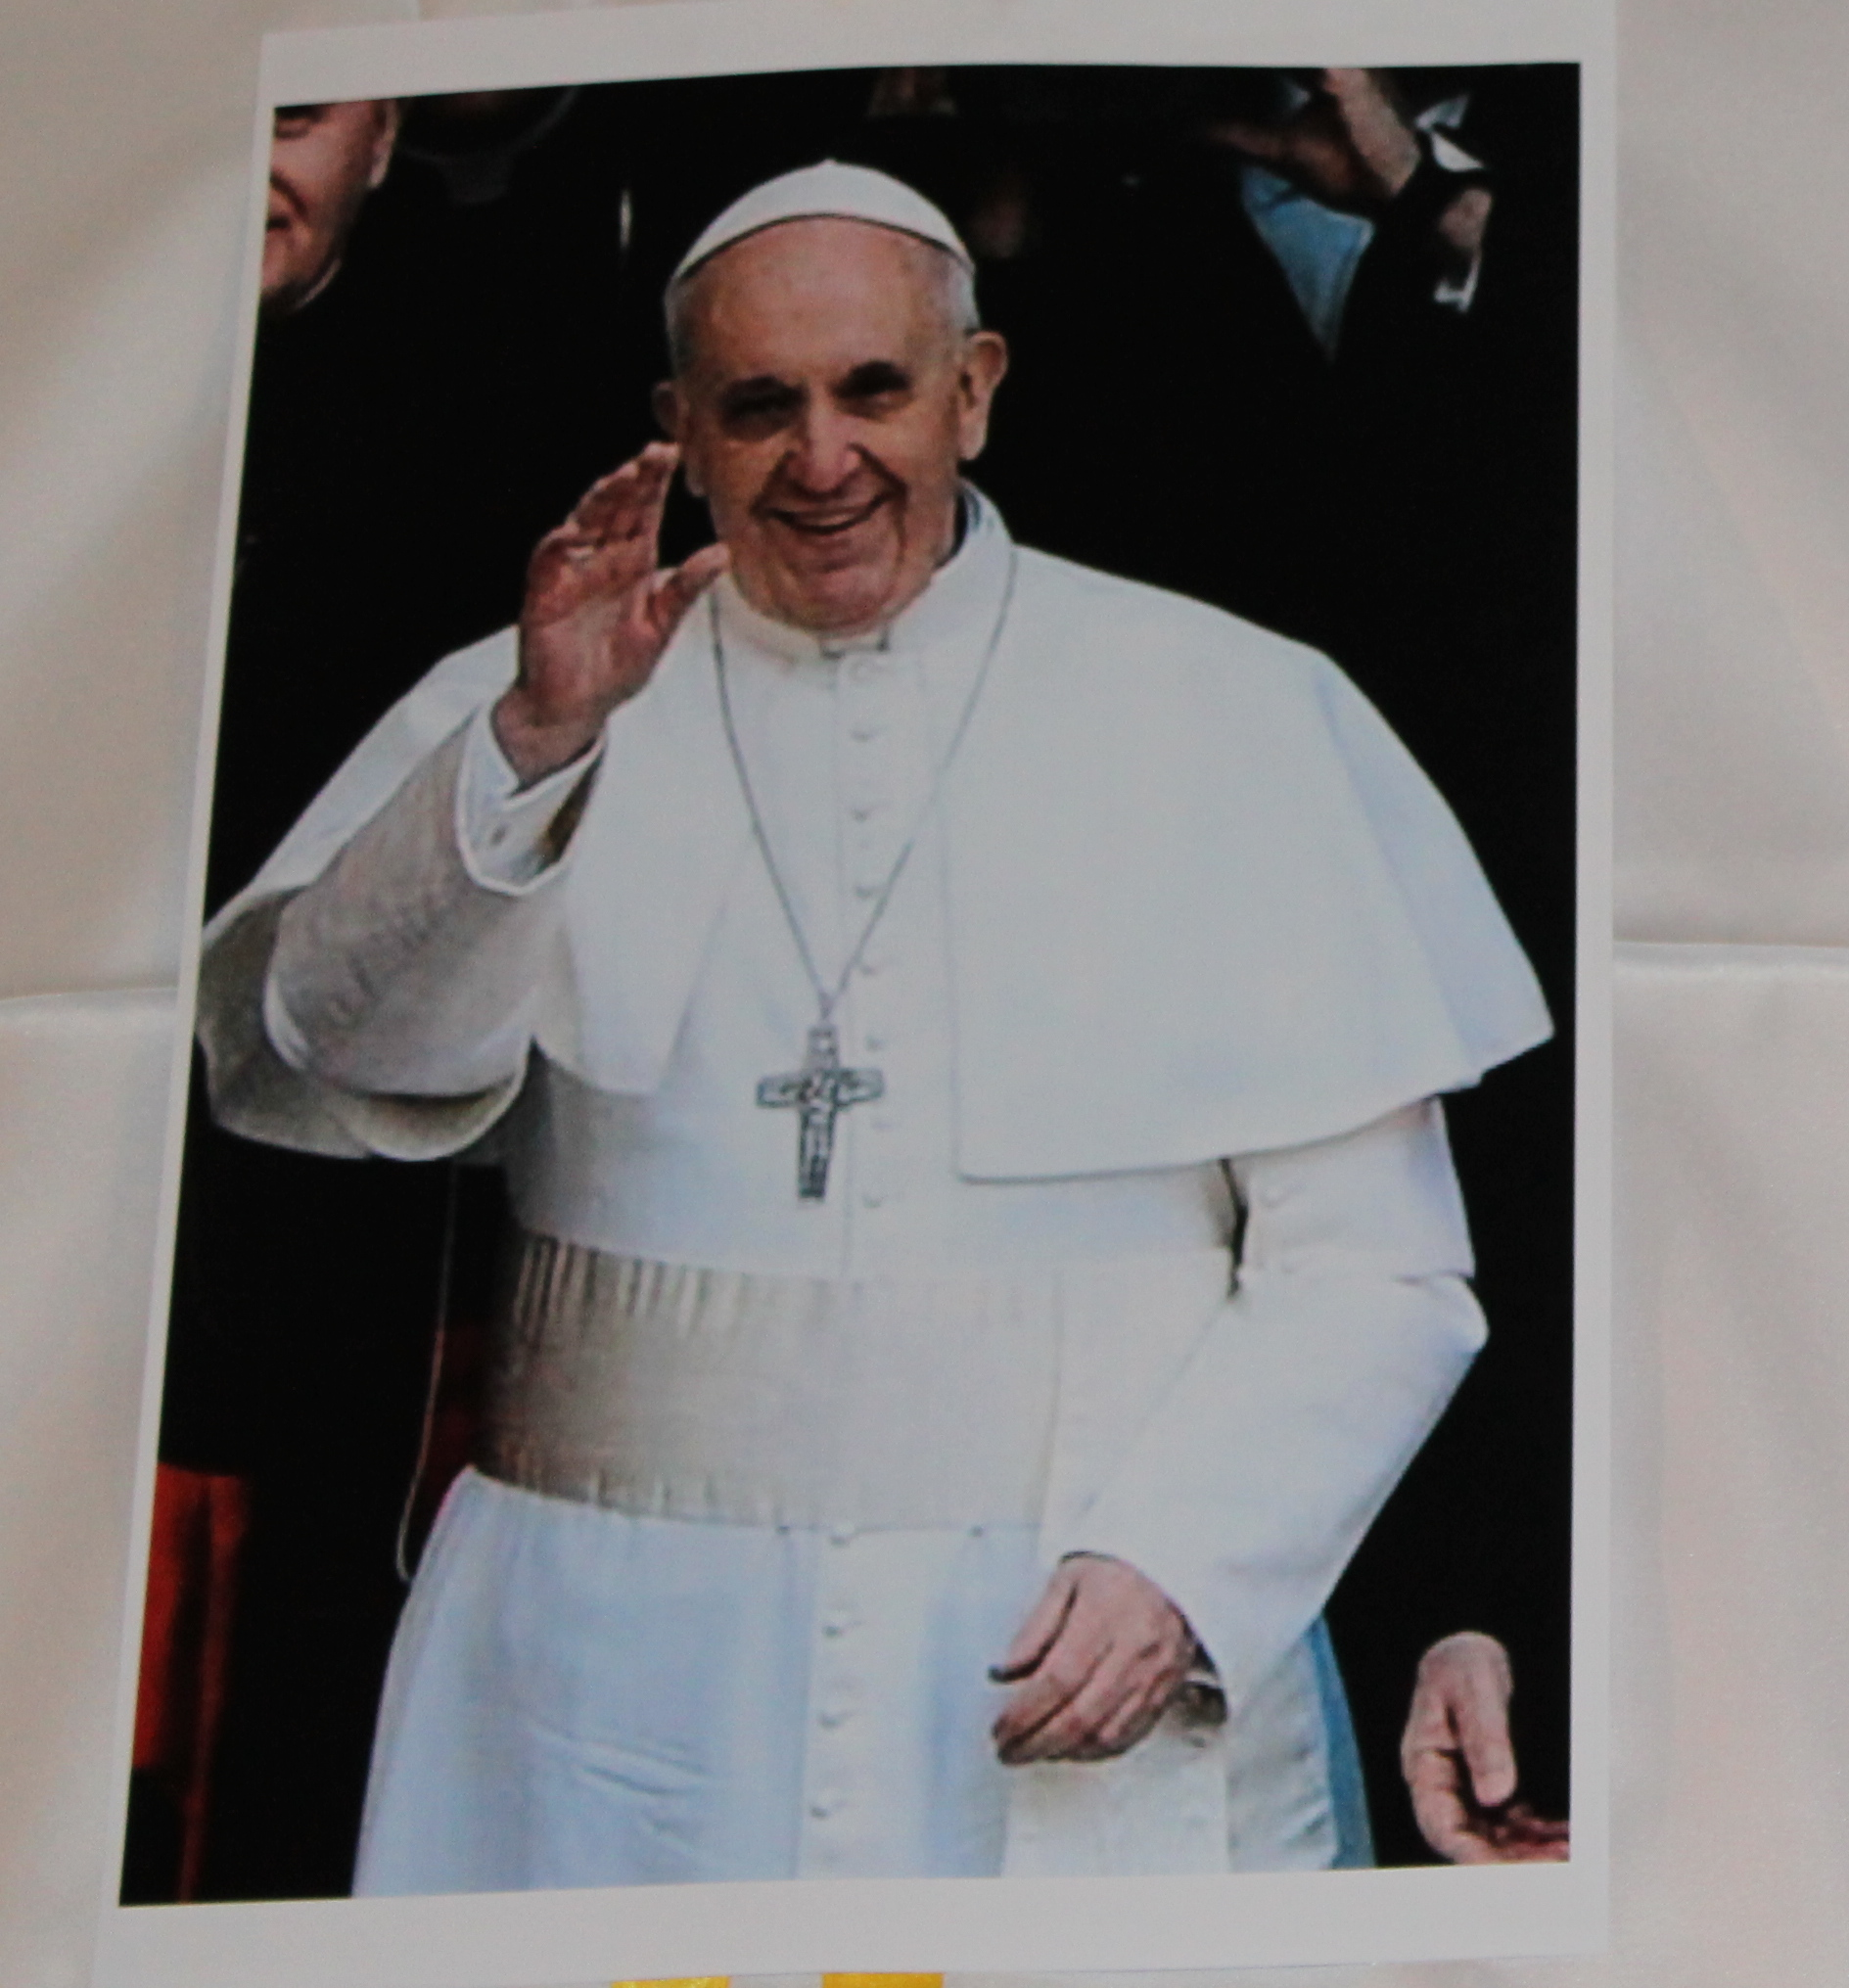 how Pope Francis is viewed in Argentina